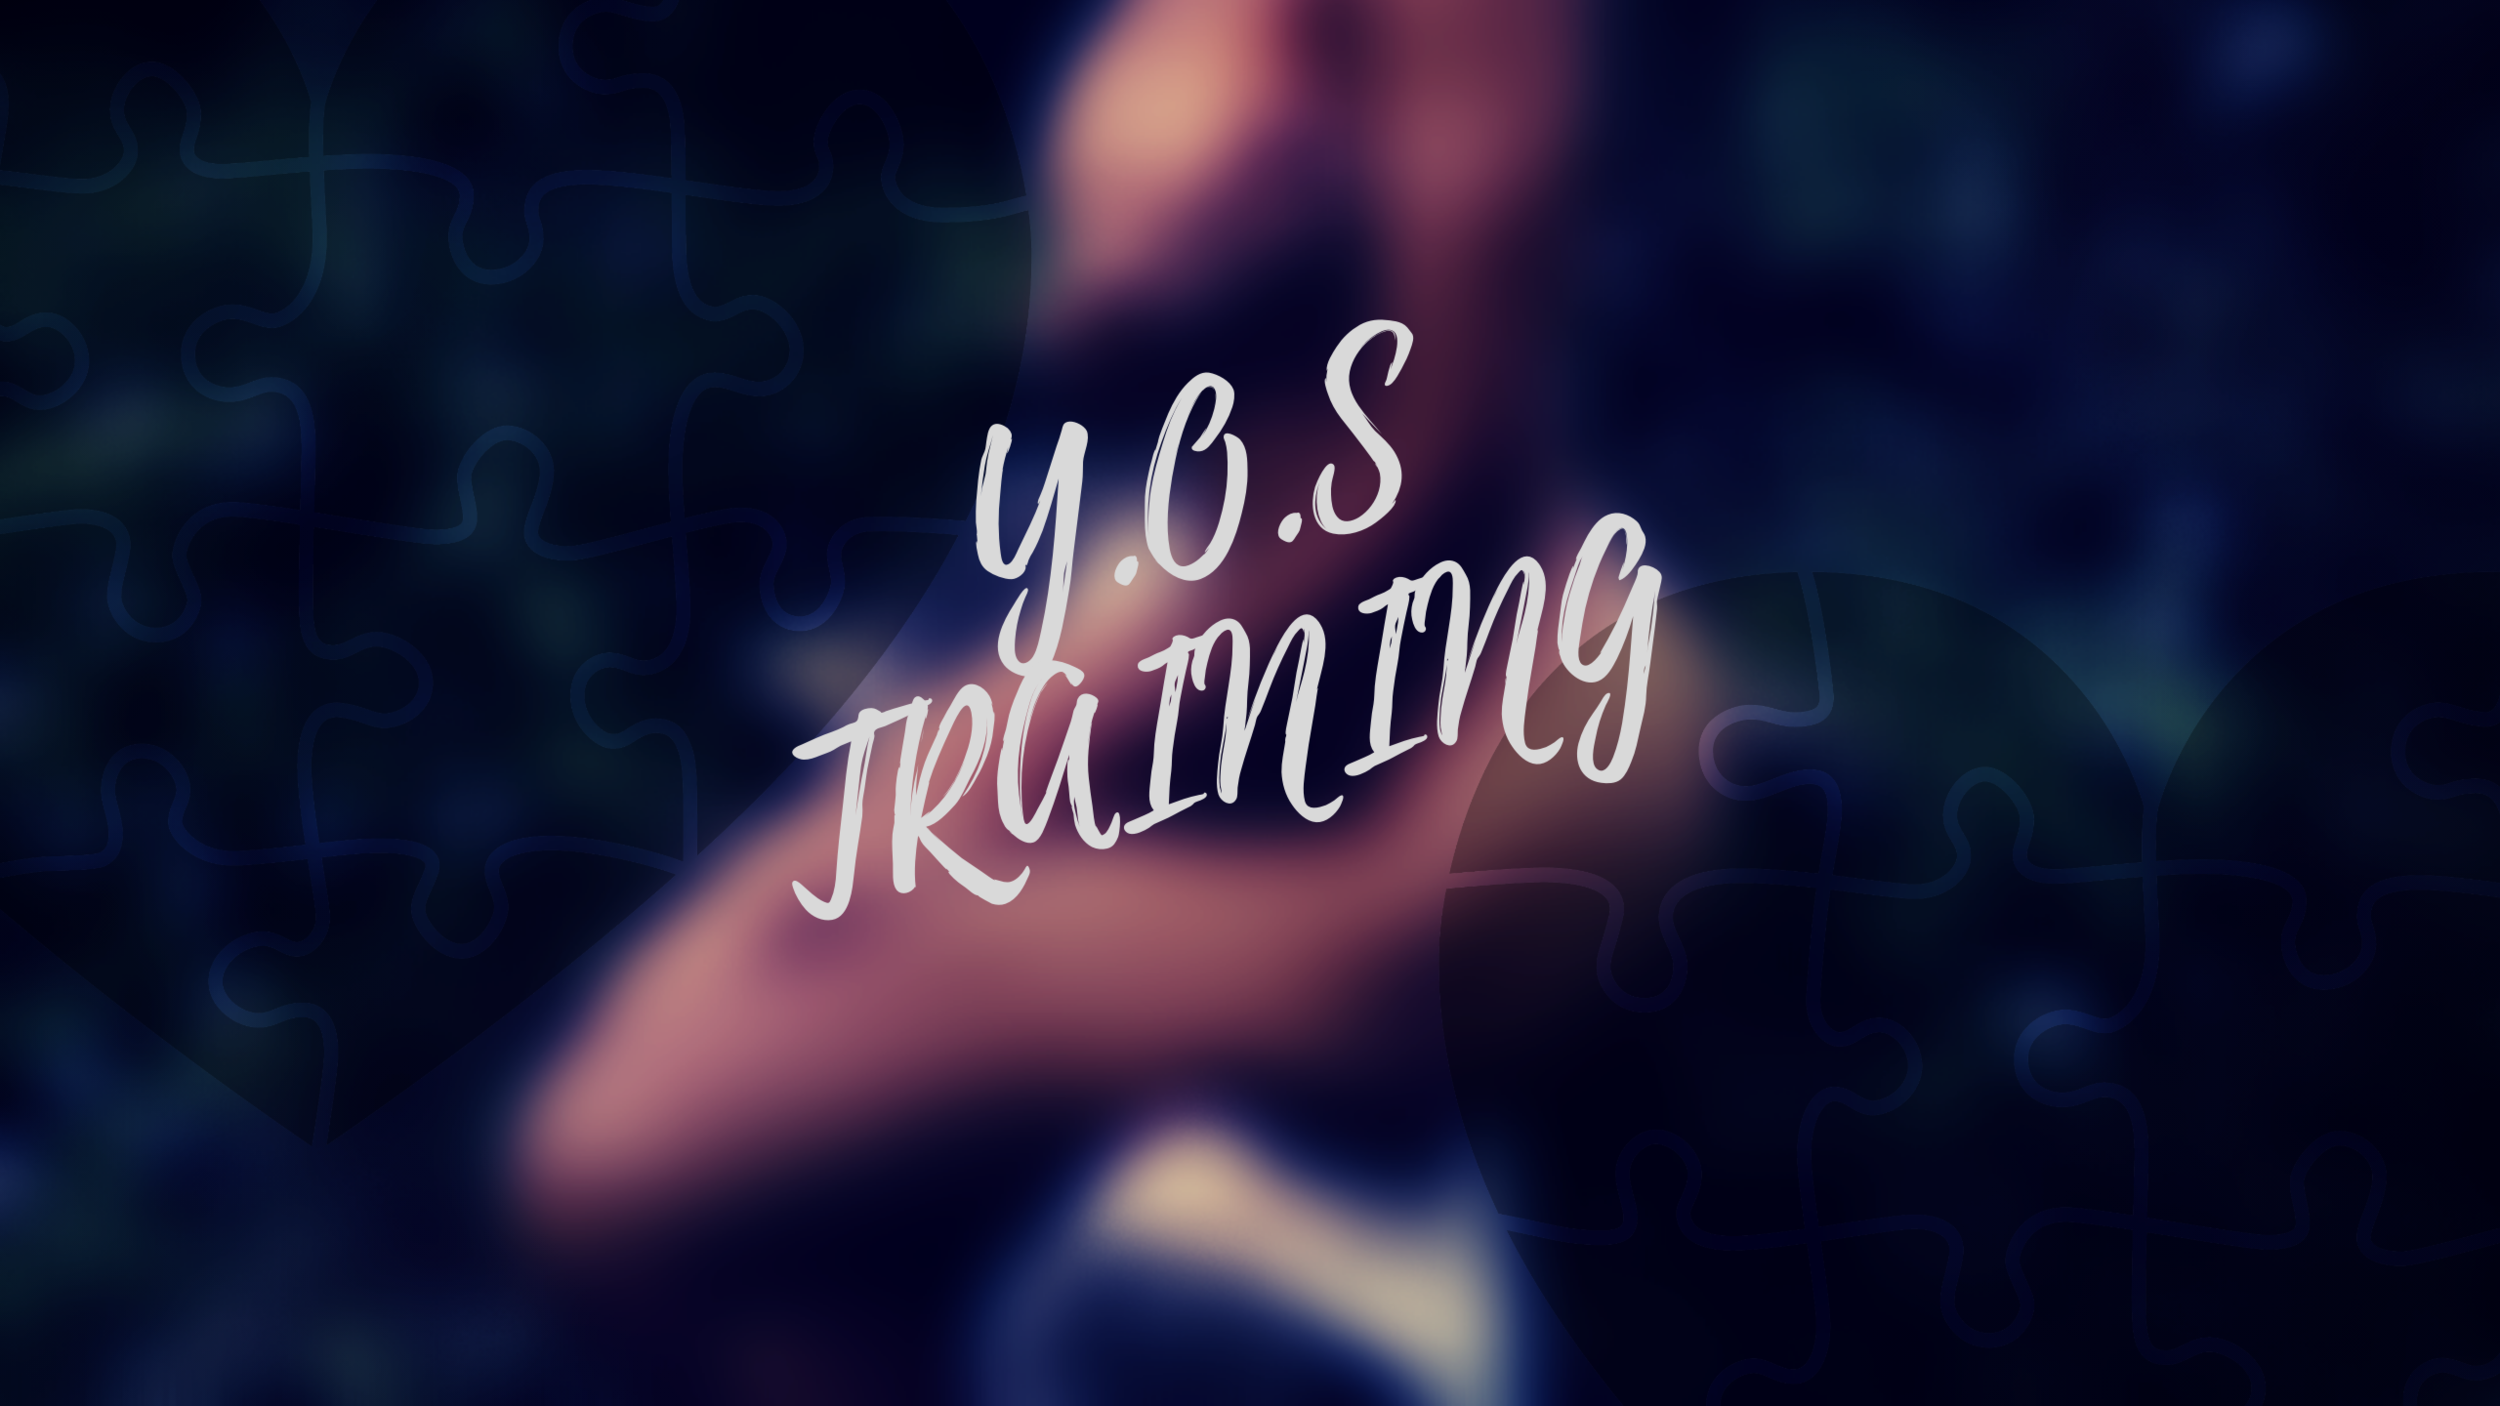 Copy of YOSVibes + Journahealing1.png